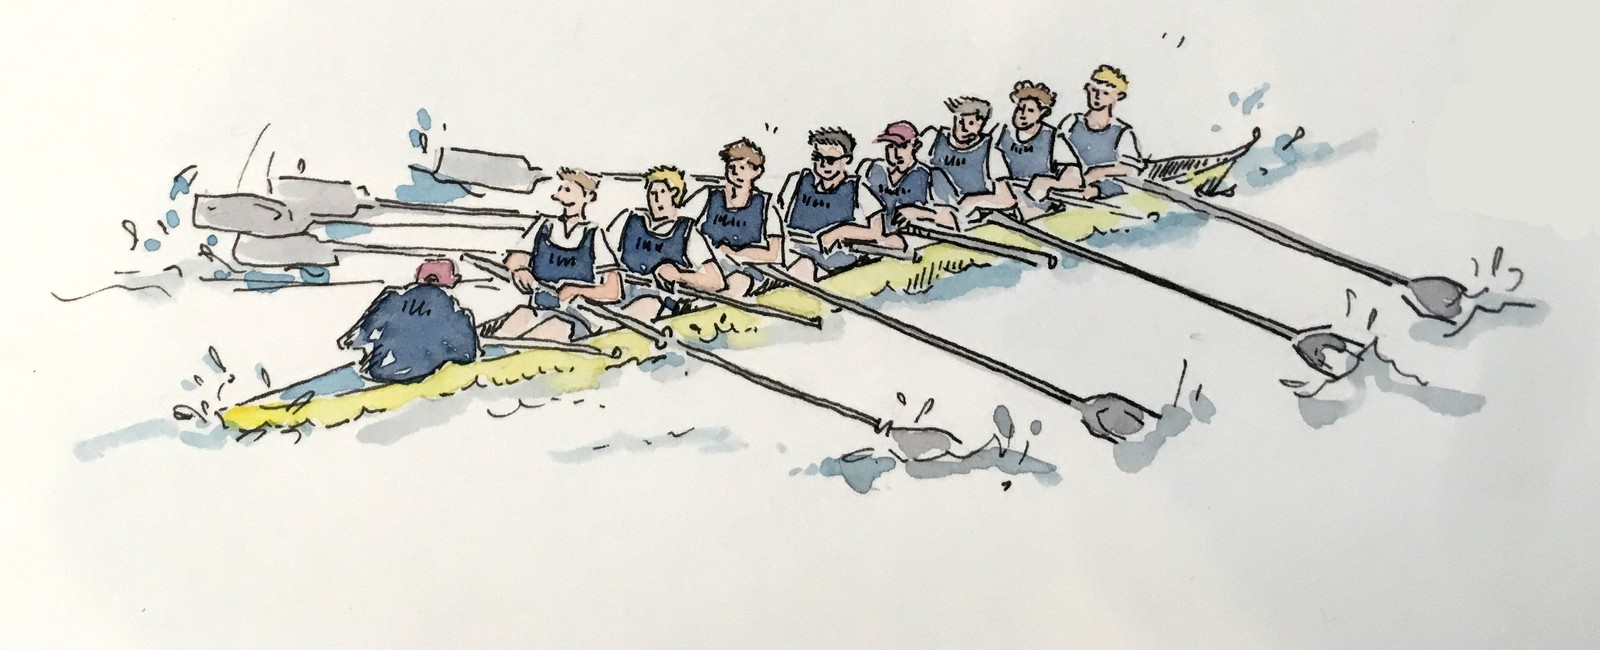 The 88th Annual Oxford and Cambridge Boat Race Dinner VIRTUAL Gathering